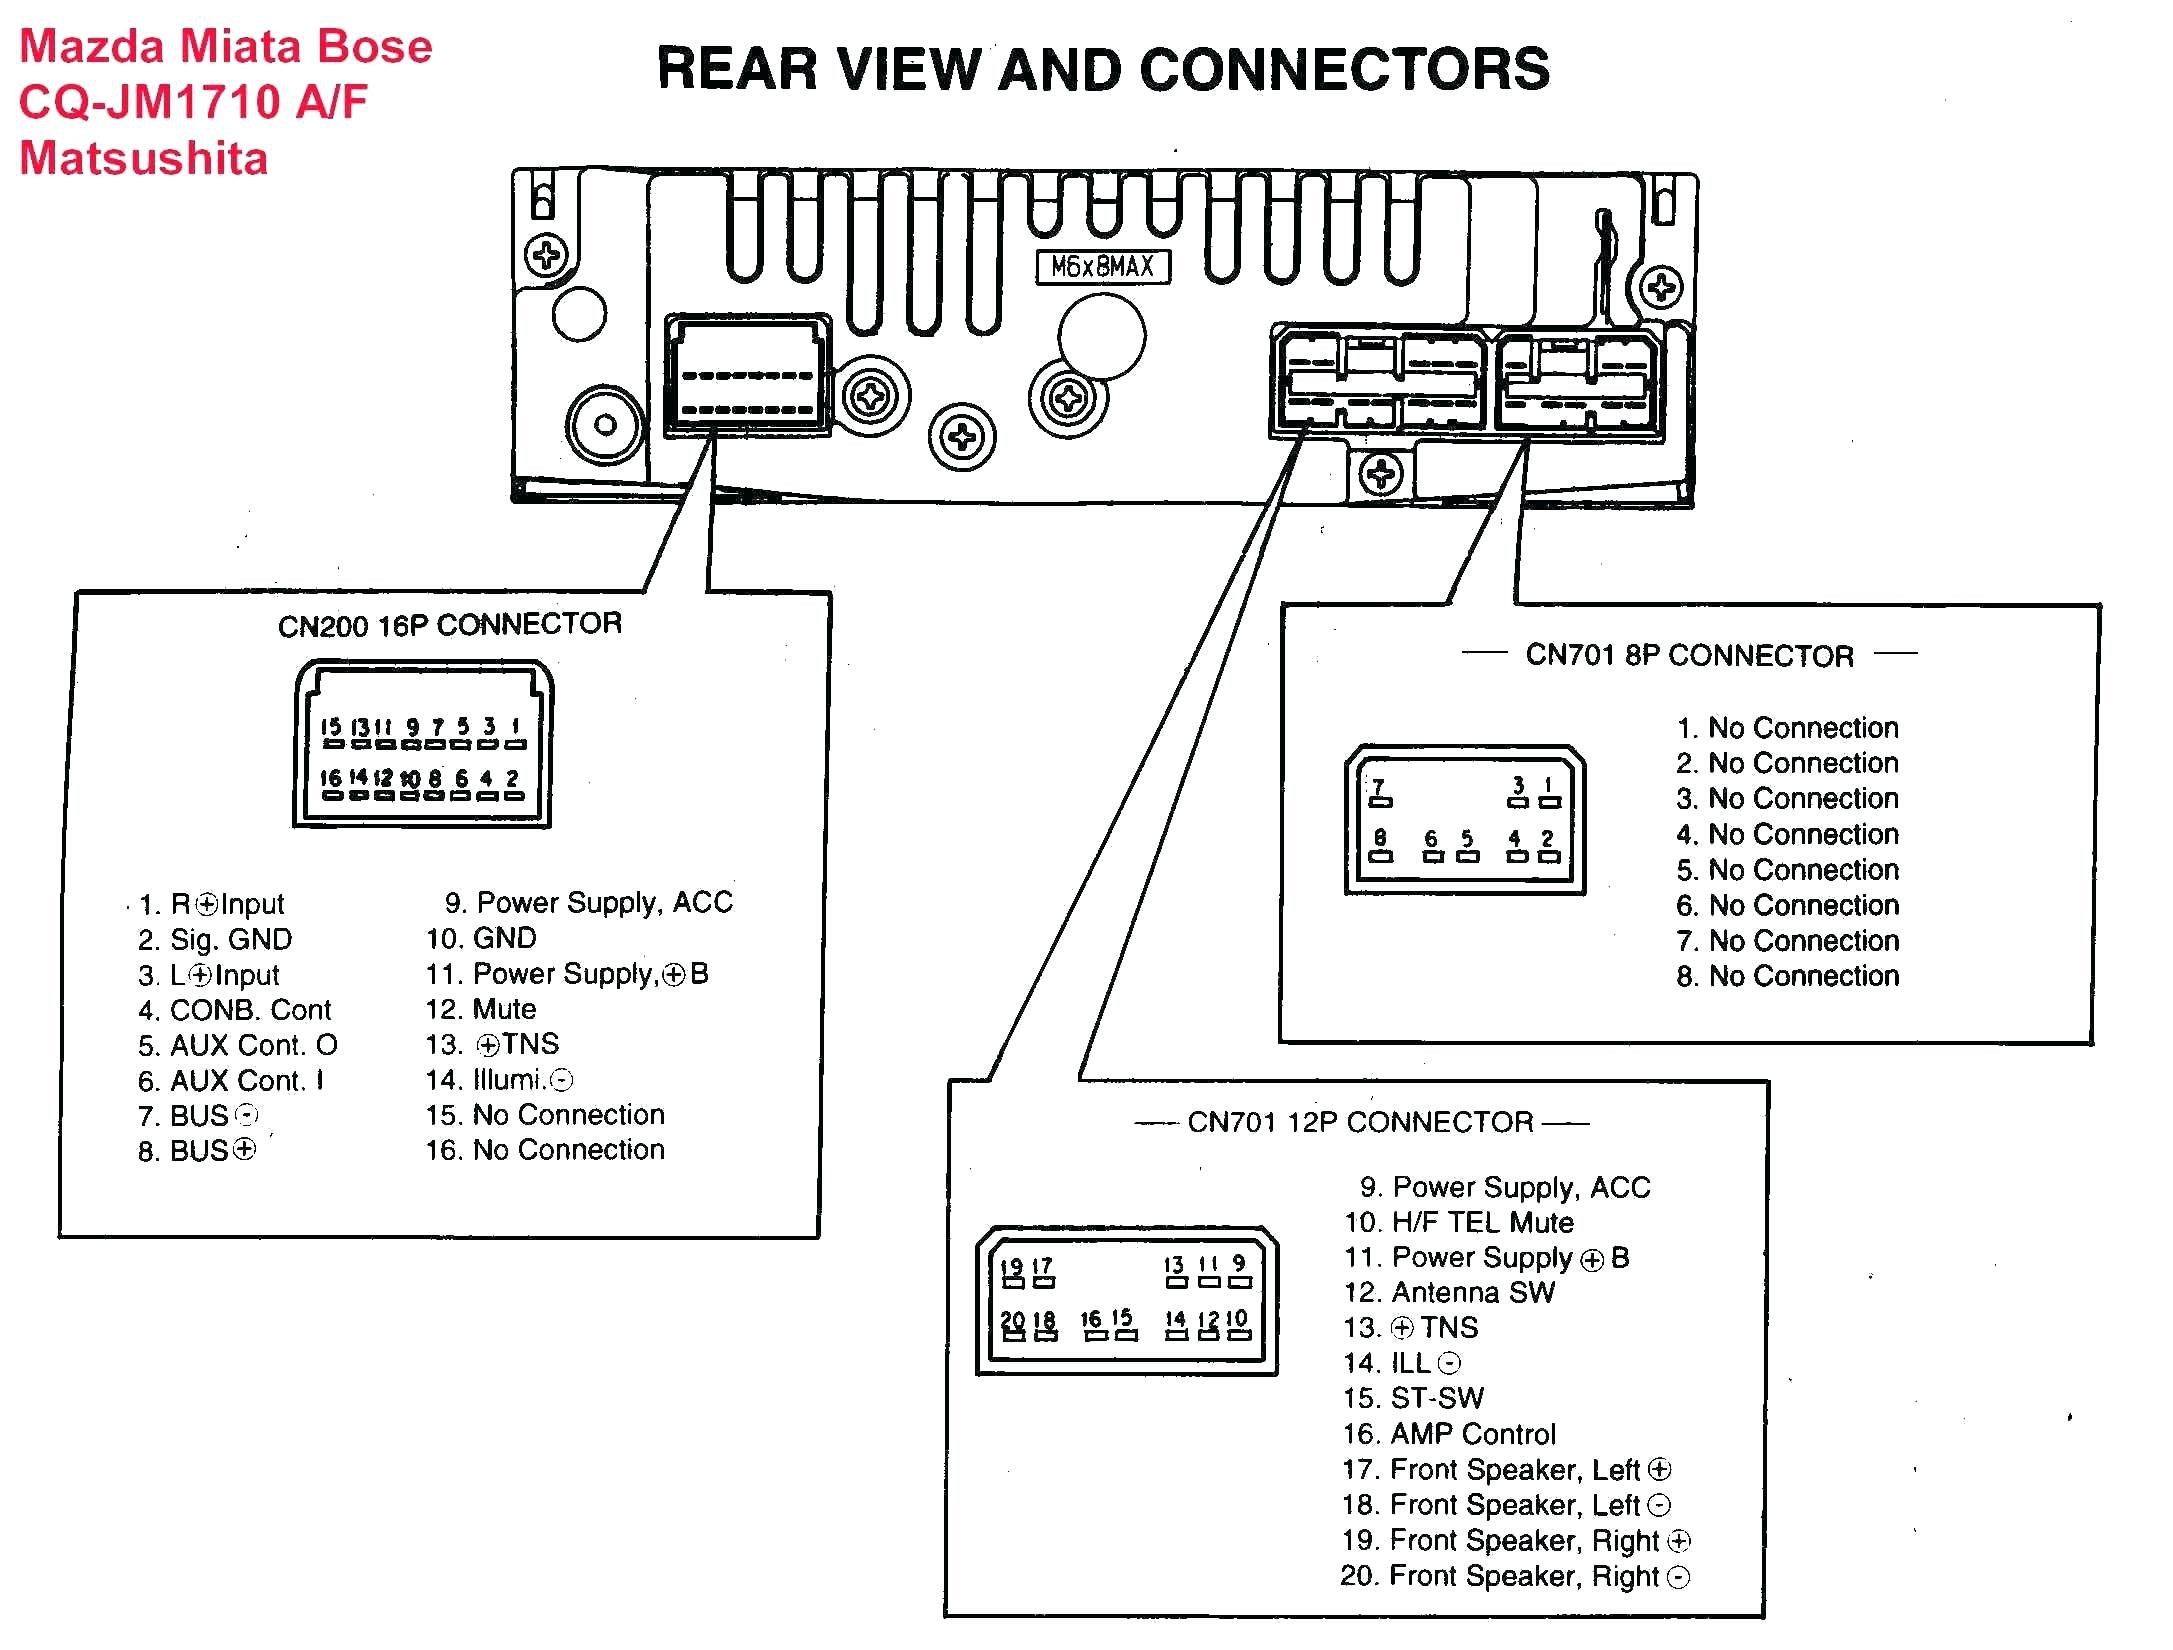 Car Radio Circuit Diagram Elegant sony Car Stereo Wiring Diagram Wiring Of Car Radio Circuit Diagram